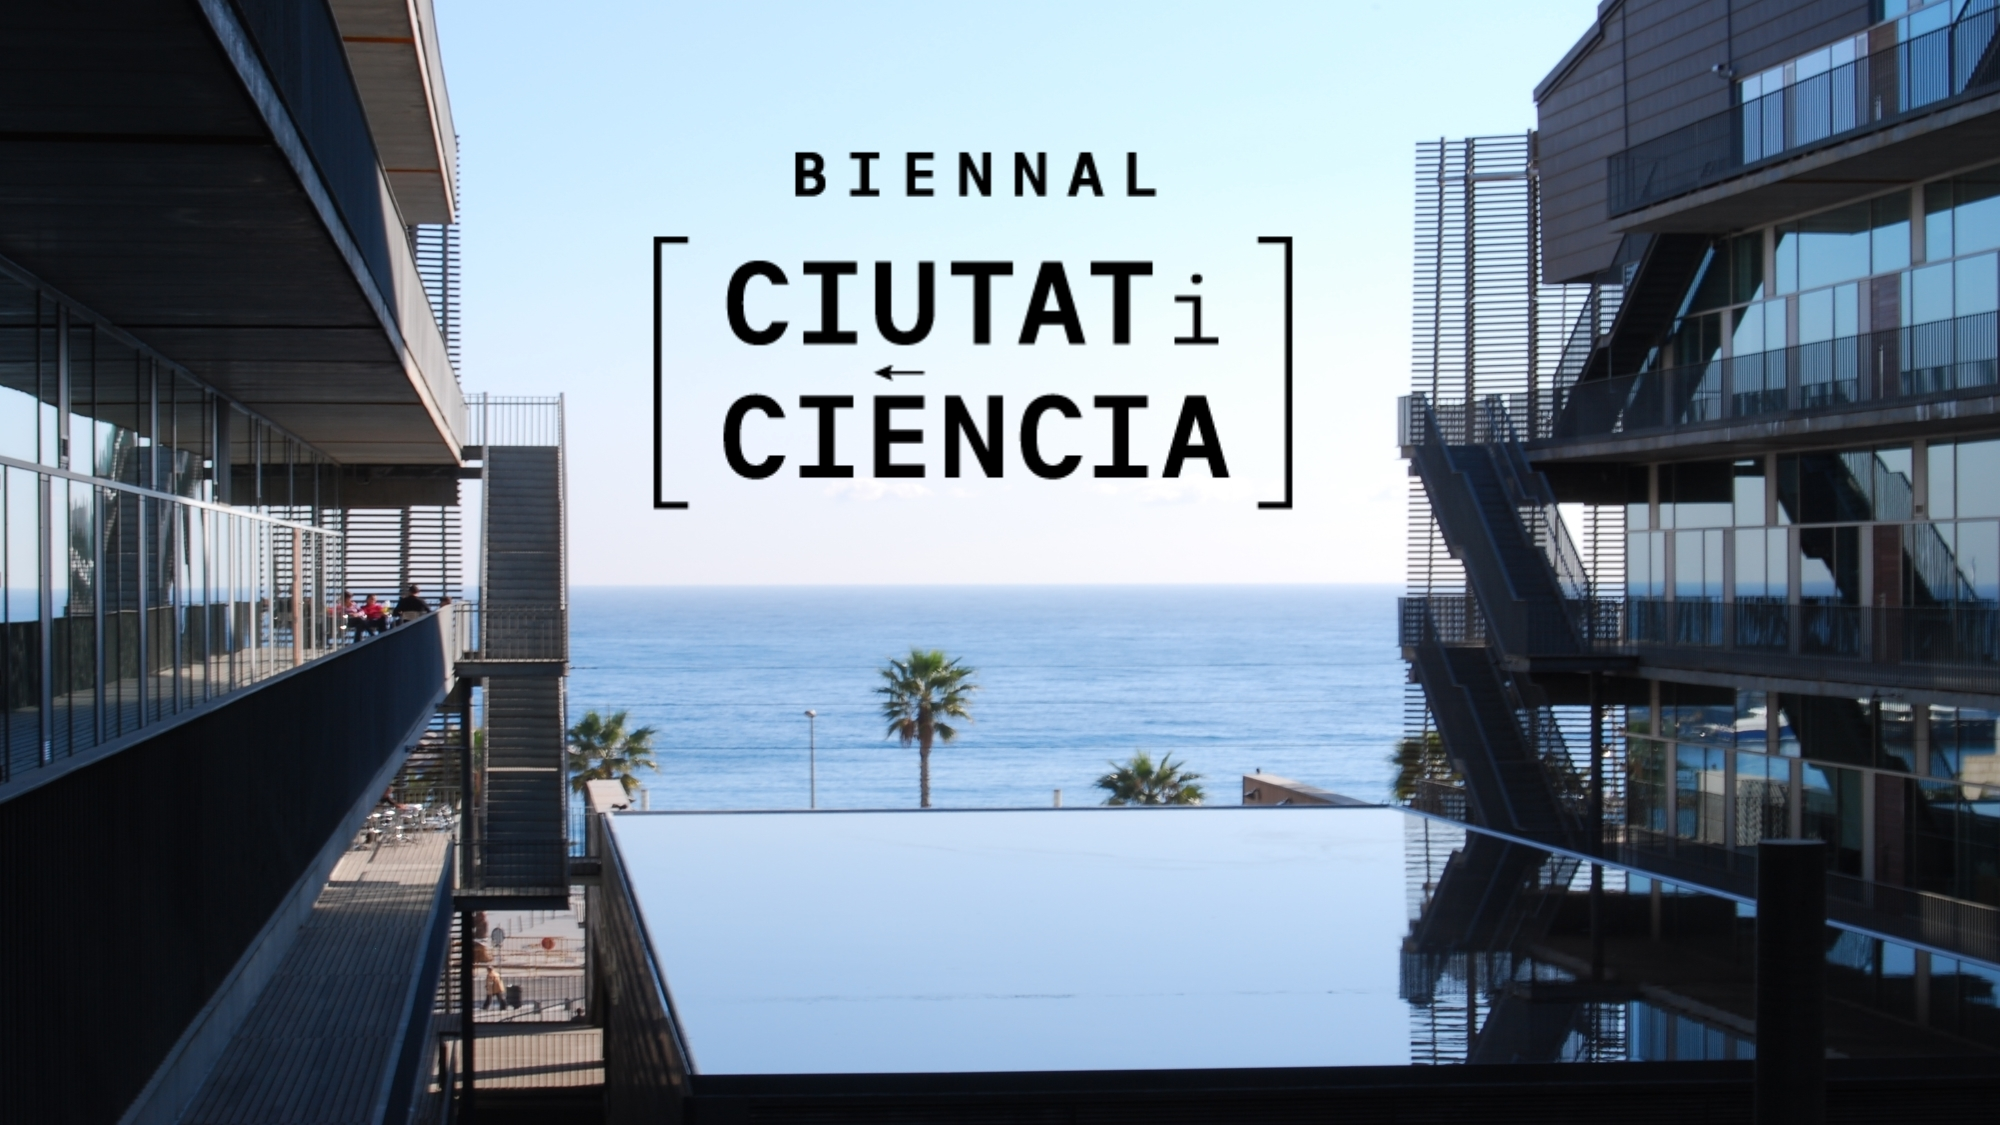 You can follow all the activities on social networks by using the hashtag #CiutatiCiència (Image from UPF flickr).